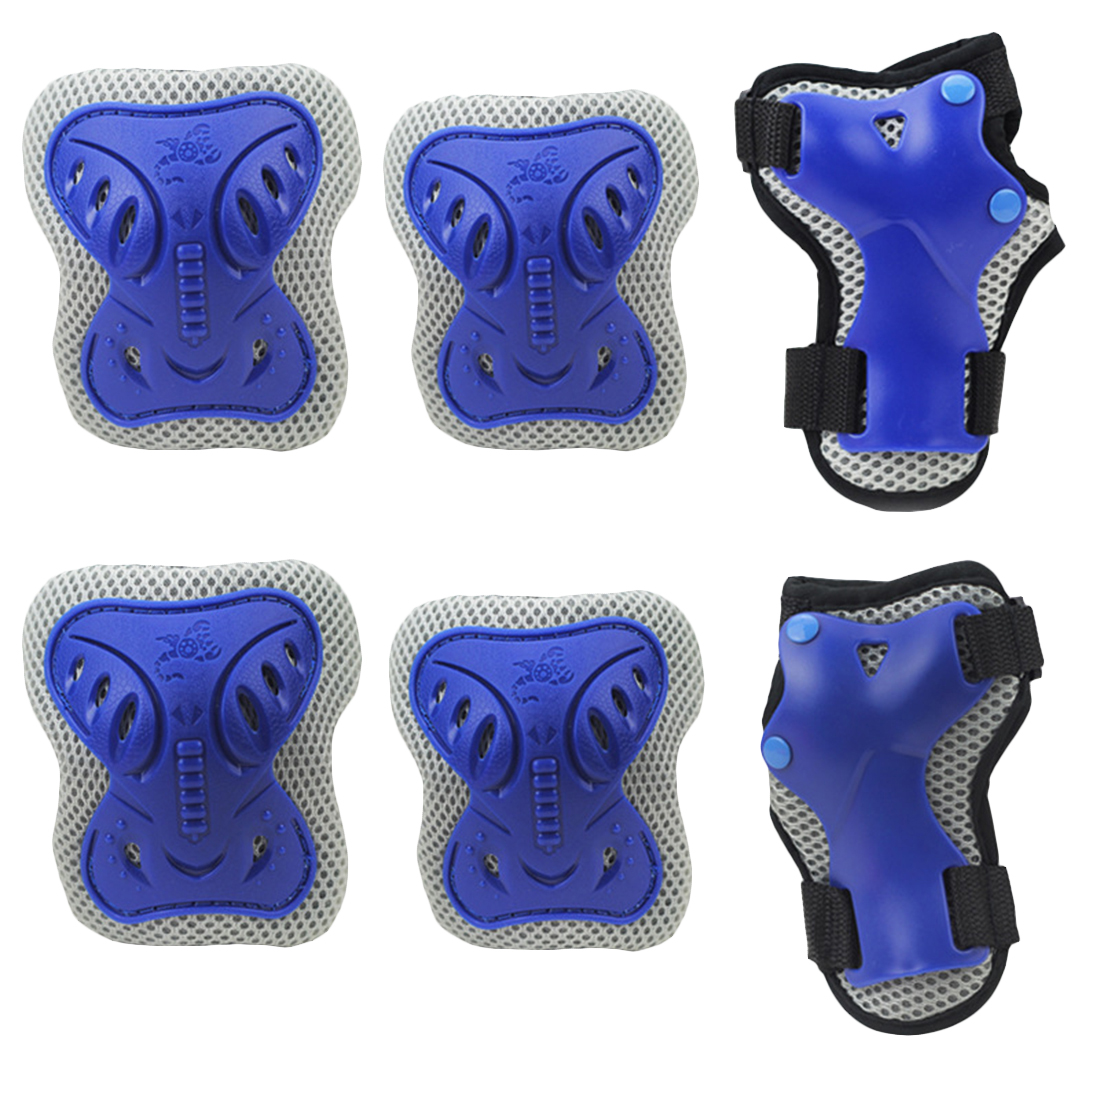 Sport Safety Protective Gear Guard Butterfly Elbow Wrist Knee Pads for Children Skateboard Skating Cycling Riding Blading Protective Set of 6pcs - Blue